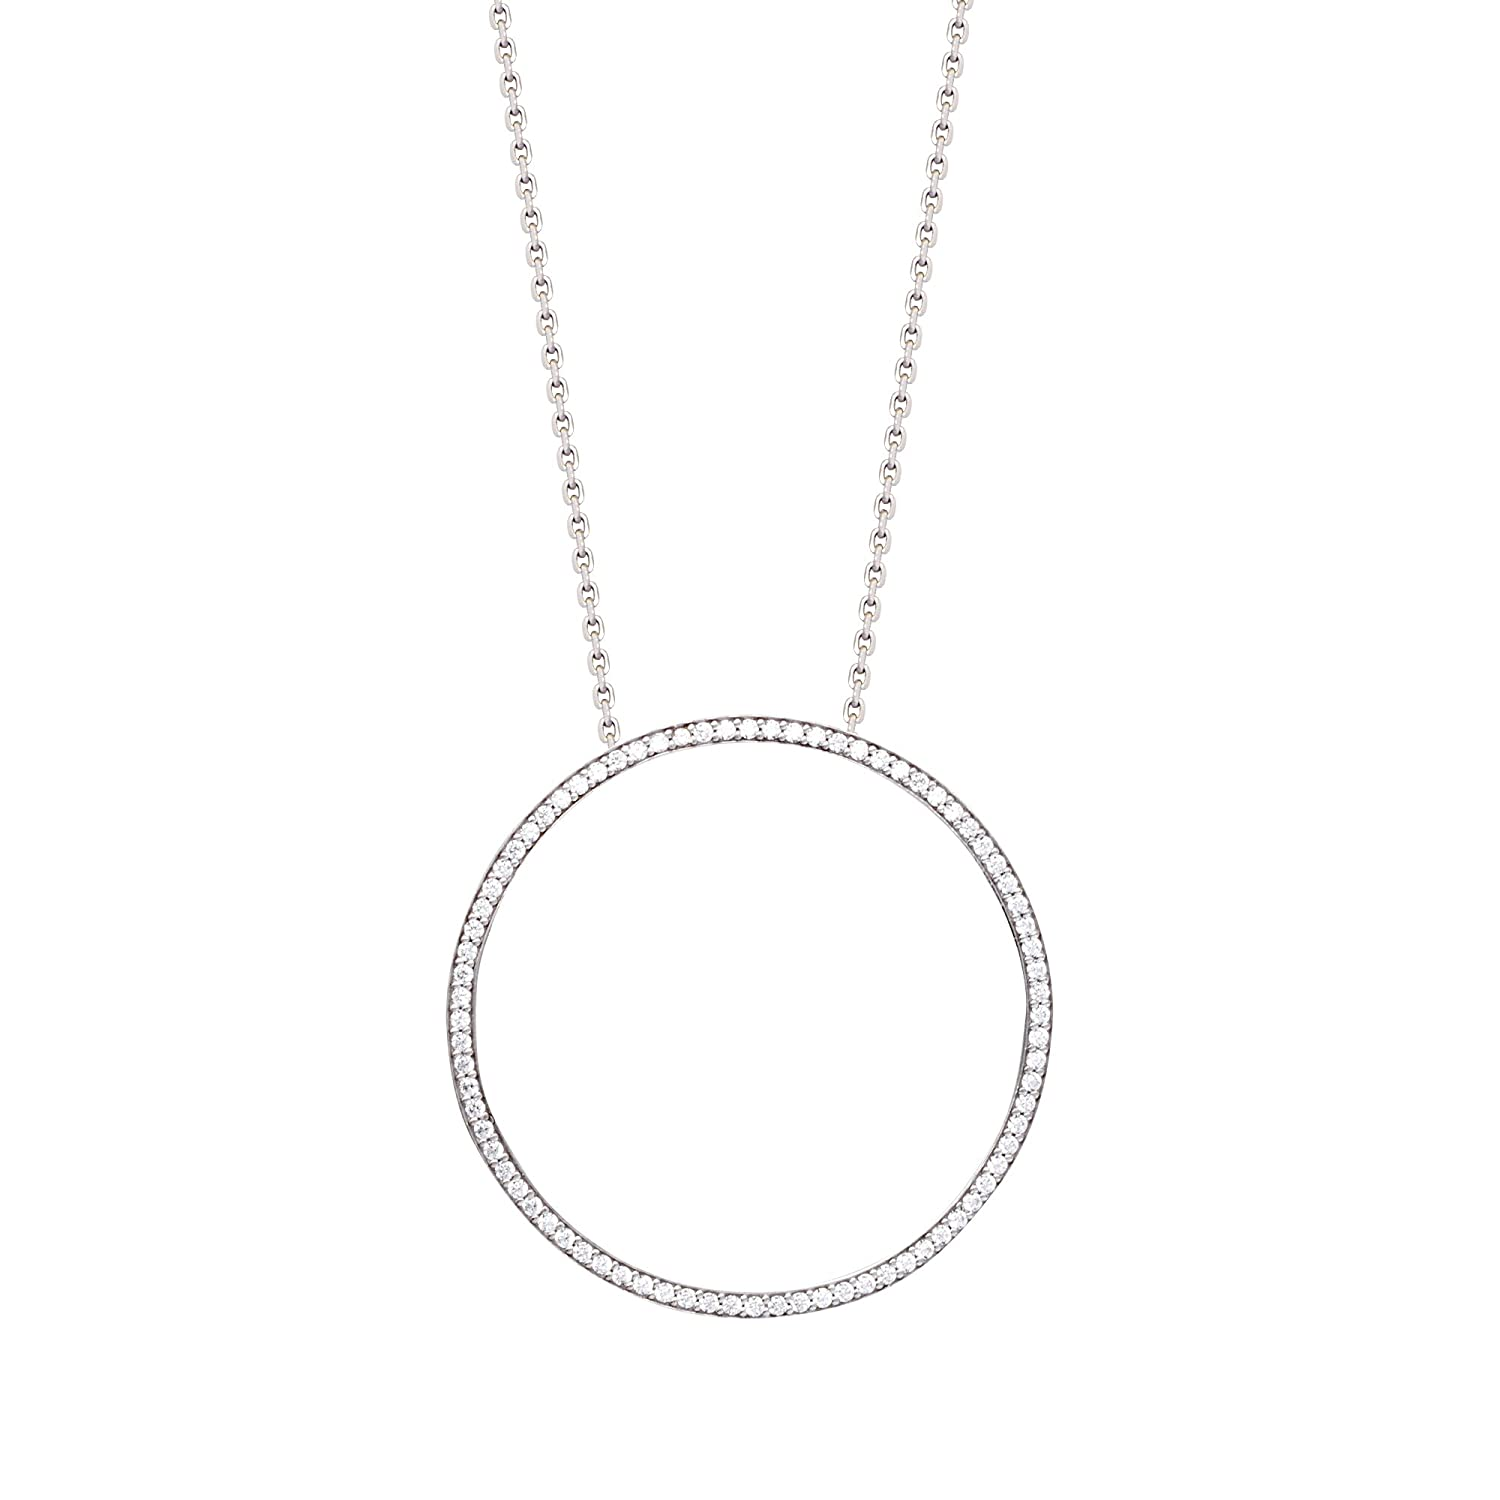 DiamondJewelryNY Silver Pendant Lrg Cz Open Circle Necklace